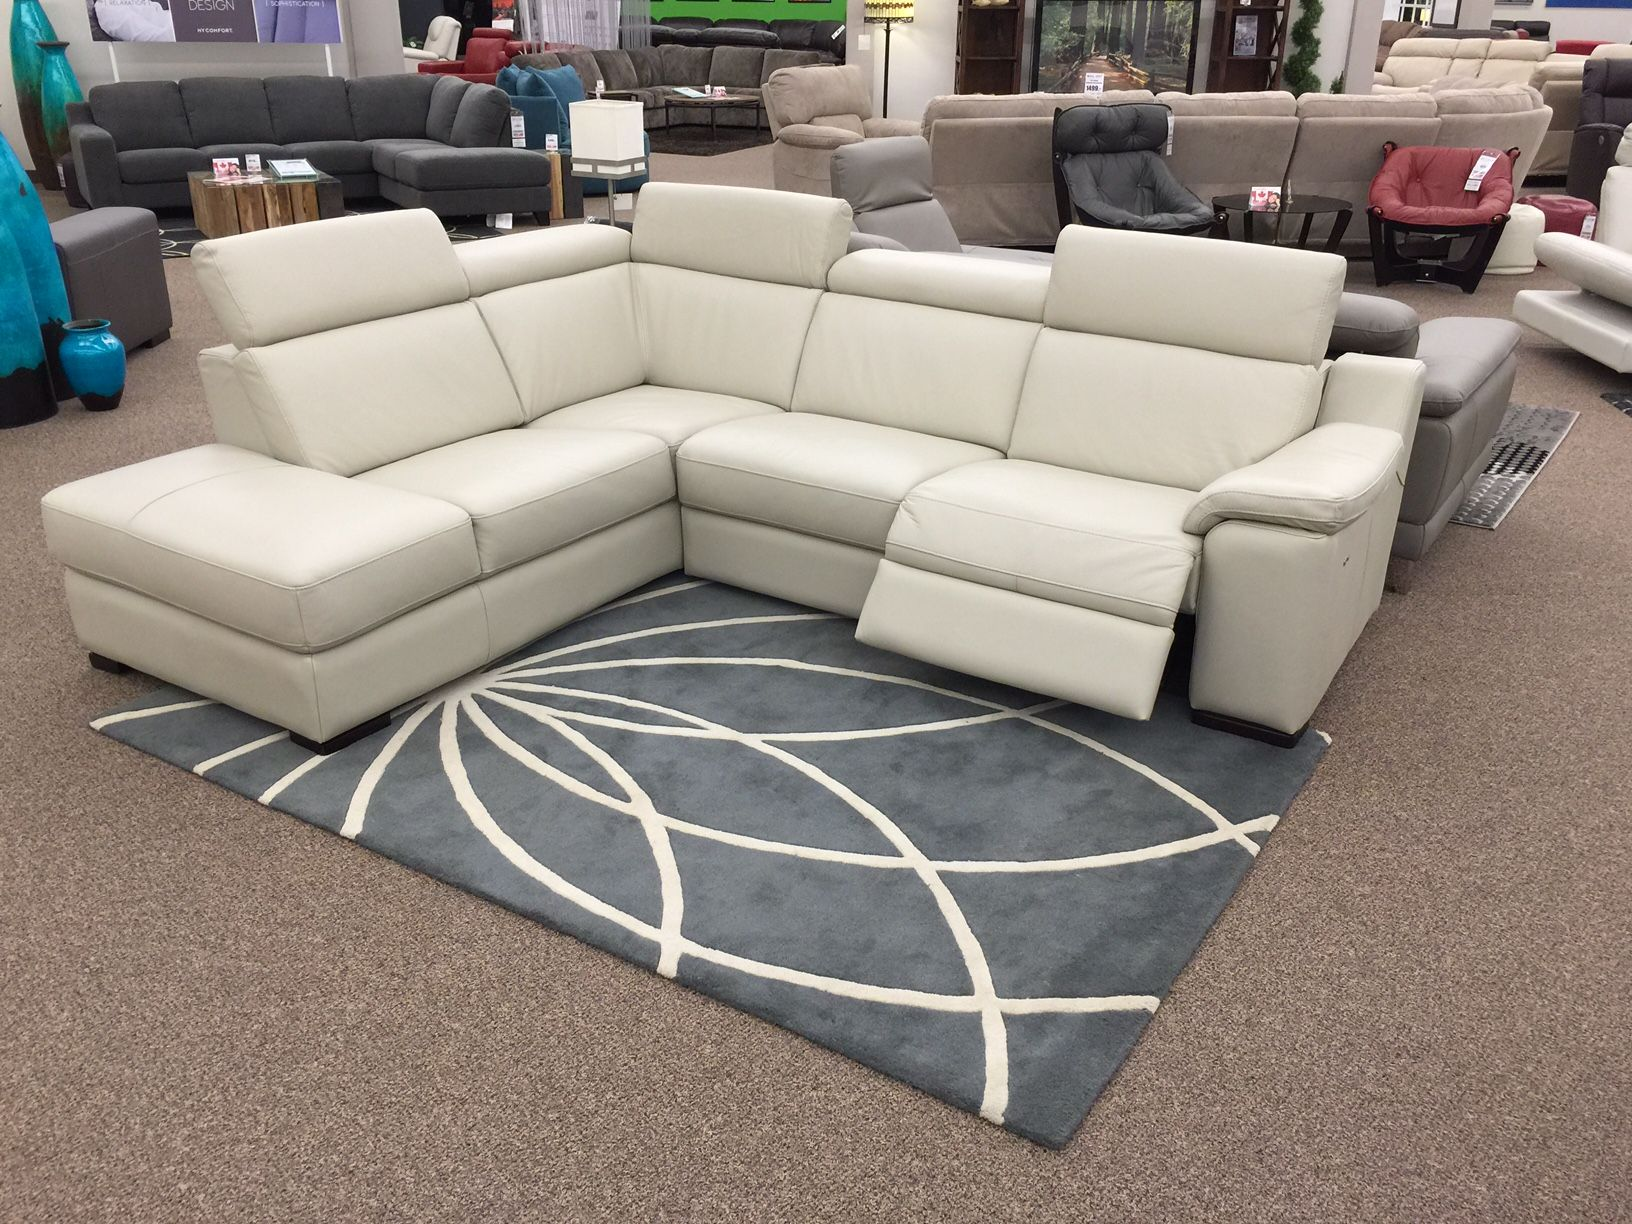 The Ashlynn Sectional just arrived at Sofa Land! This 100% leather piece features one · ReclinersSofas & The Ashlynn Sectional just arrived at Sofa Land! This 100% leather ... islam-shia.org